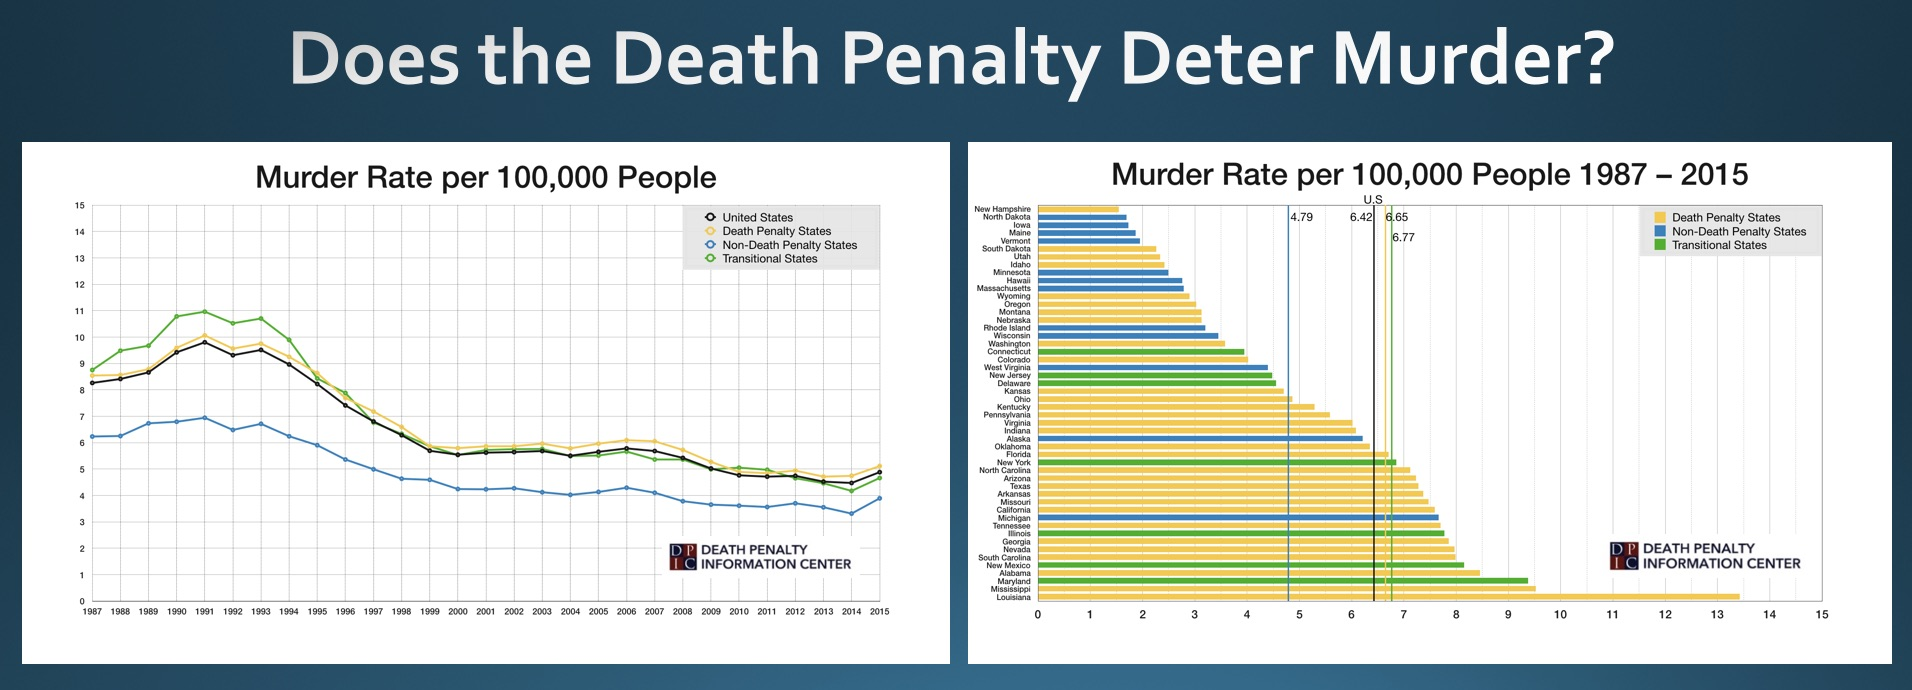 an analysis of the opposing views in the death penalty in the us Arguments against the death penalty there are a number of incontrovertible arguments against the death penalty the most important one is the virtual certainty that genuinely innocent people will be executed and that there is no possible way of compensating them for this miscarriage of justice.